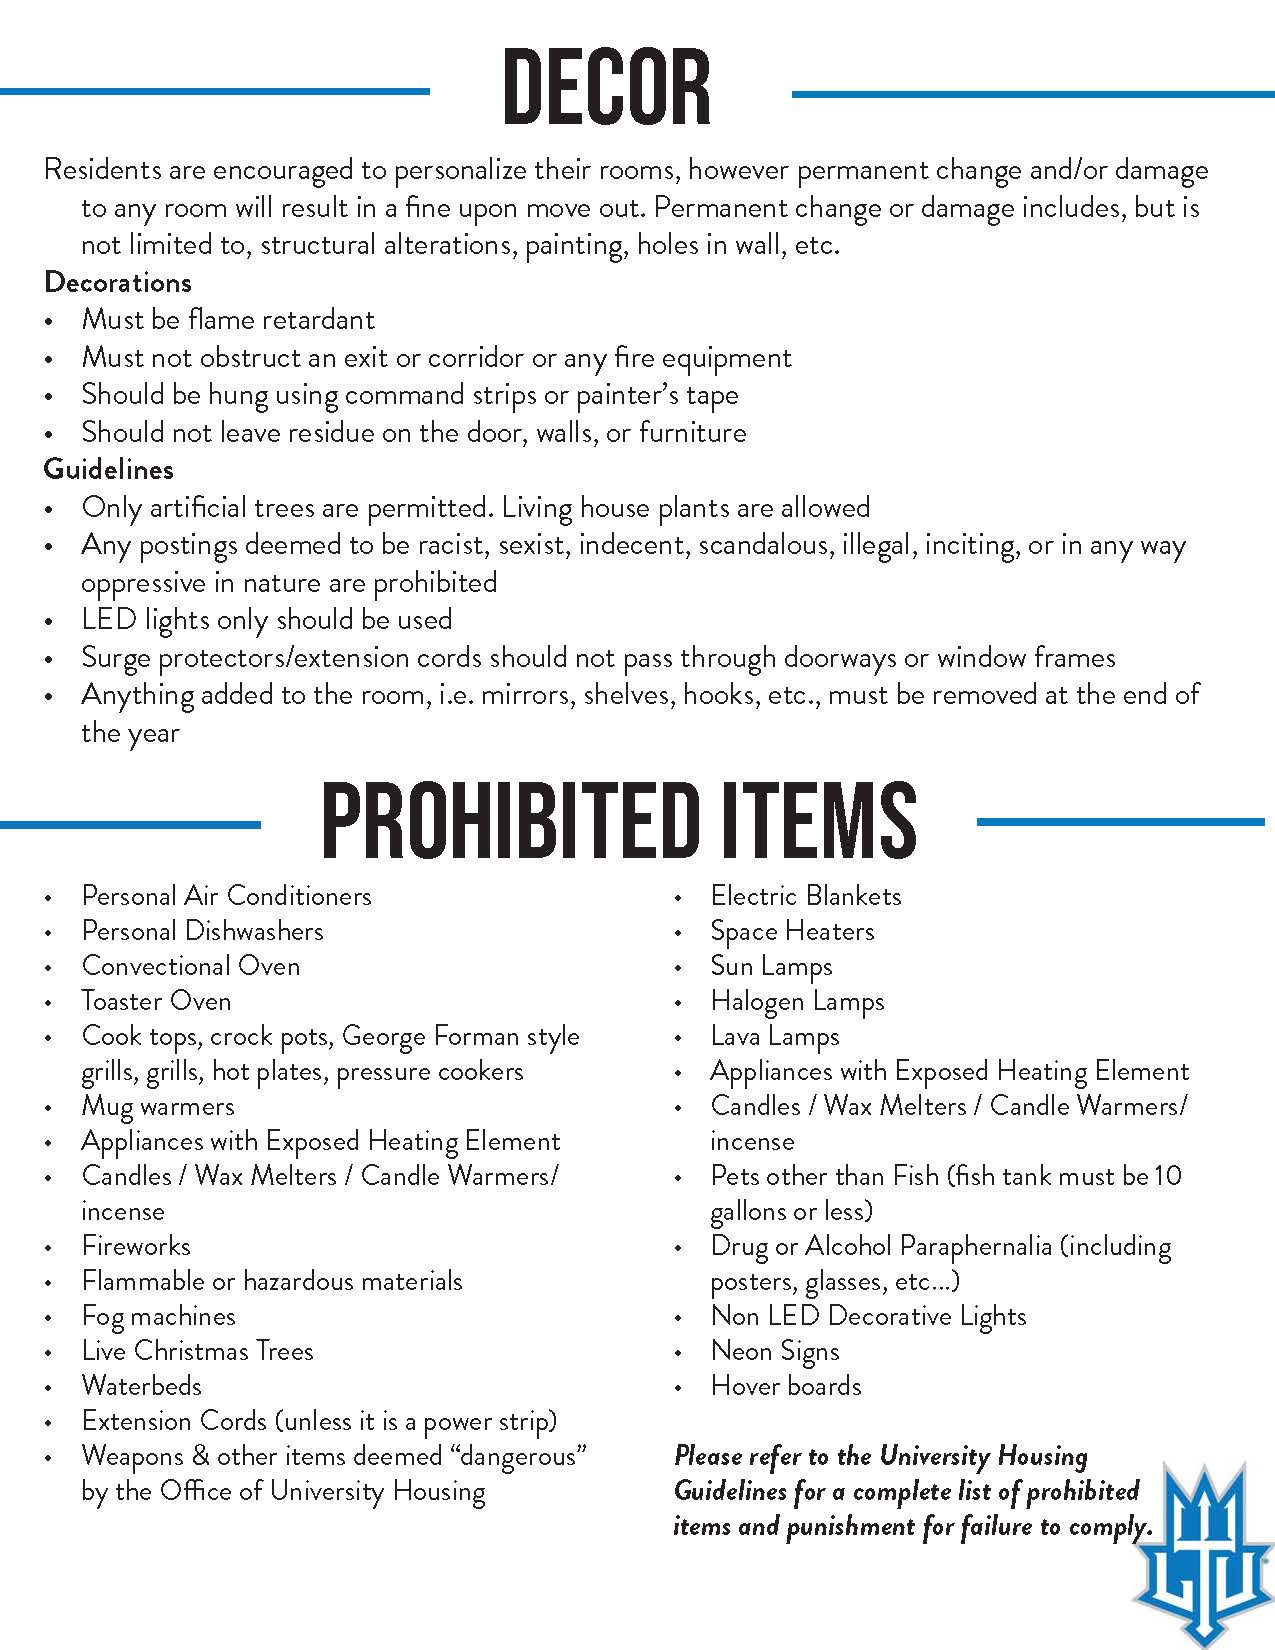 East Hall - Decor / Prohibited Items